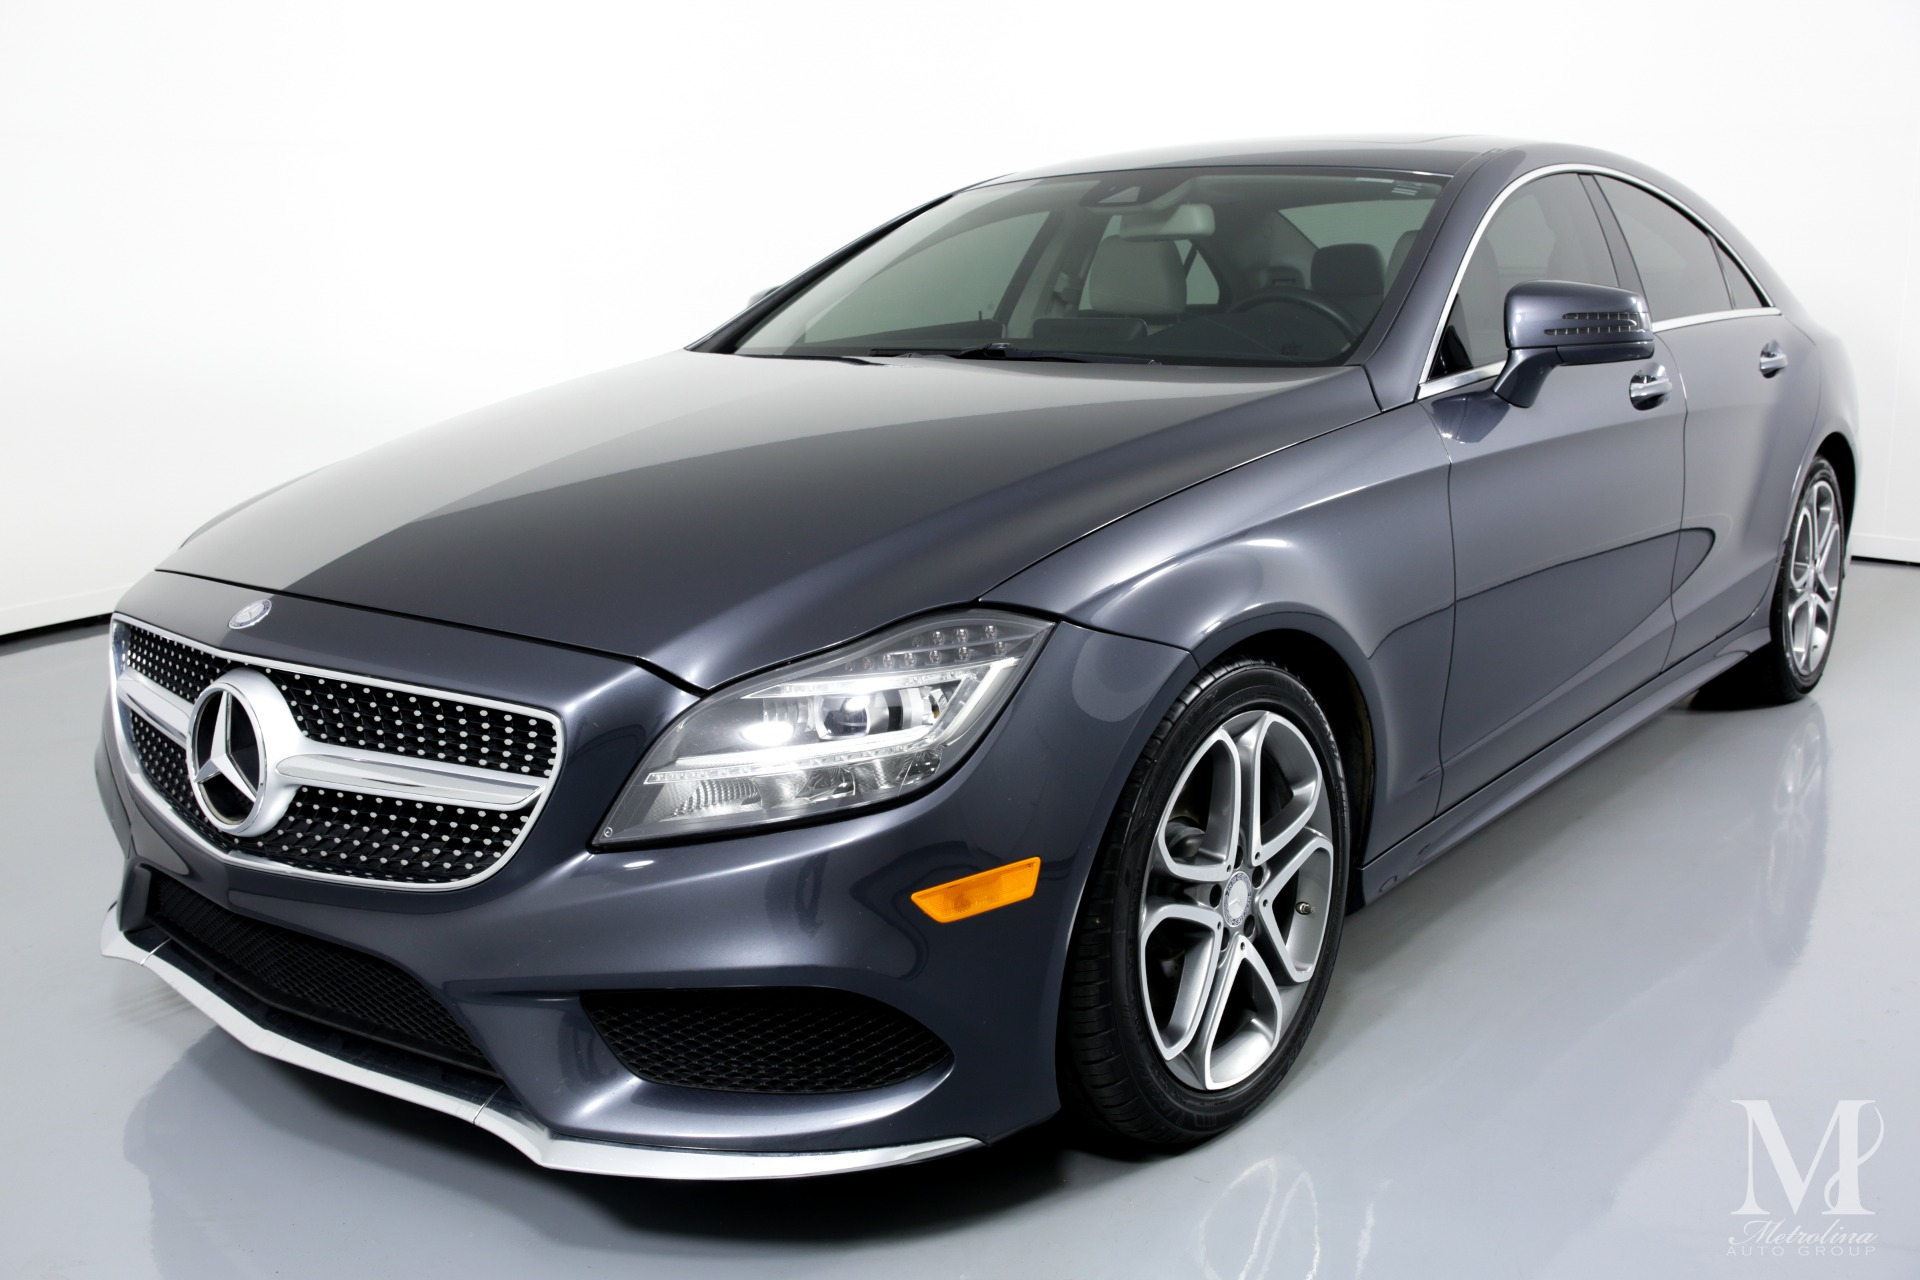 Used 2015 Mercedes-Benz CLS CLS 400 4dr Sedan for sale $29,996 at Metrolina Auto Group in Charlotte NC 28217 - 4